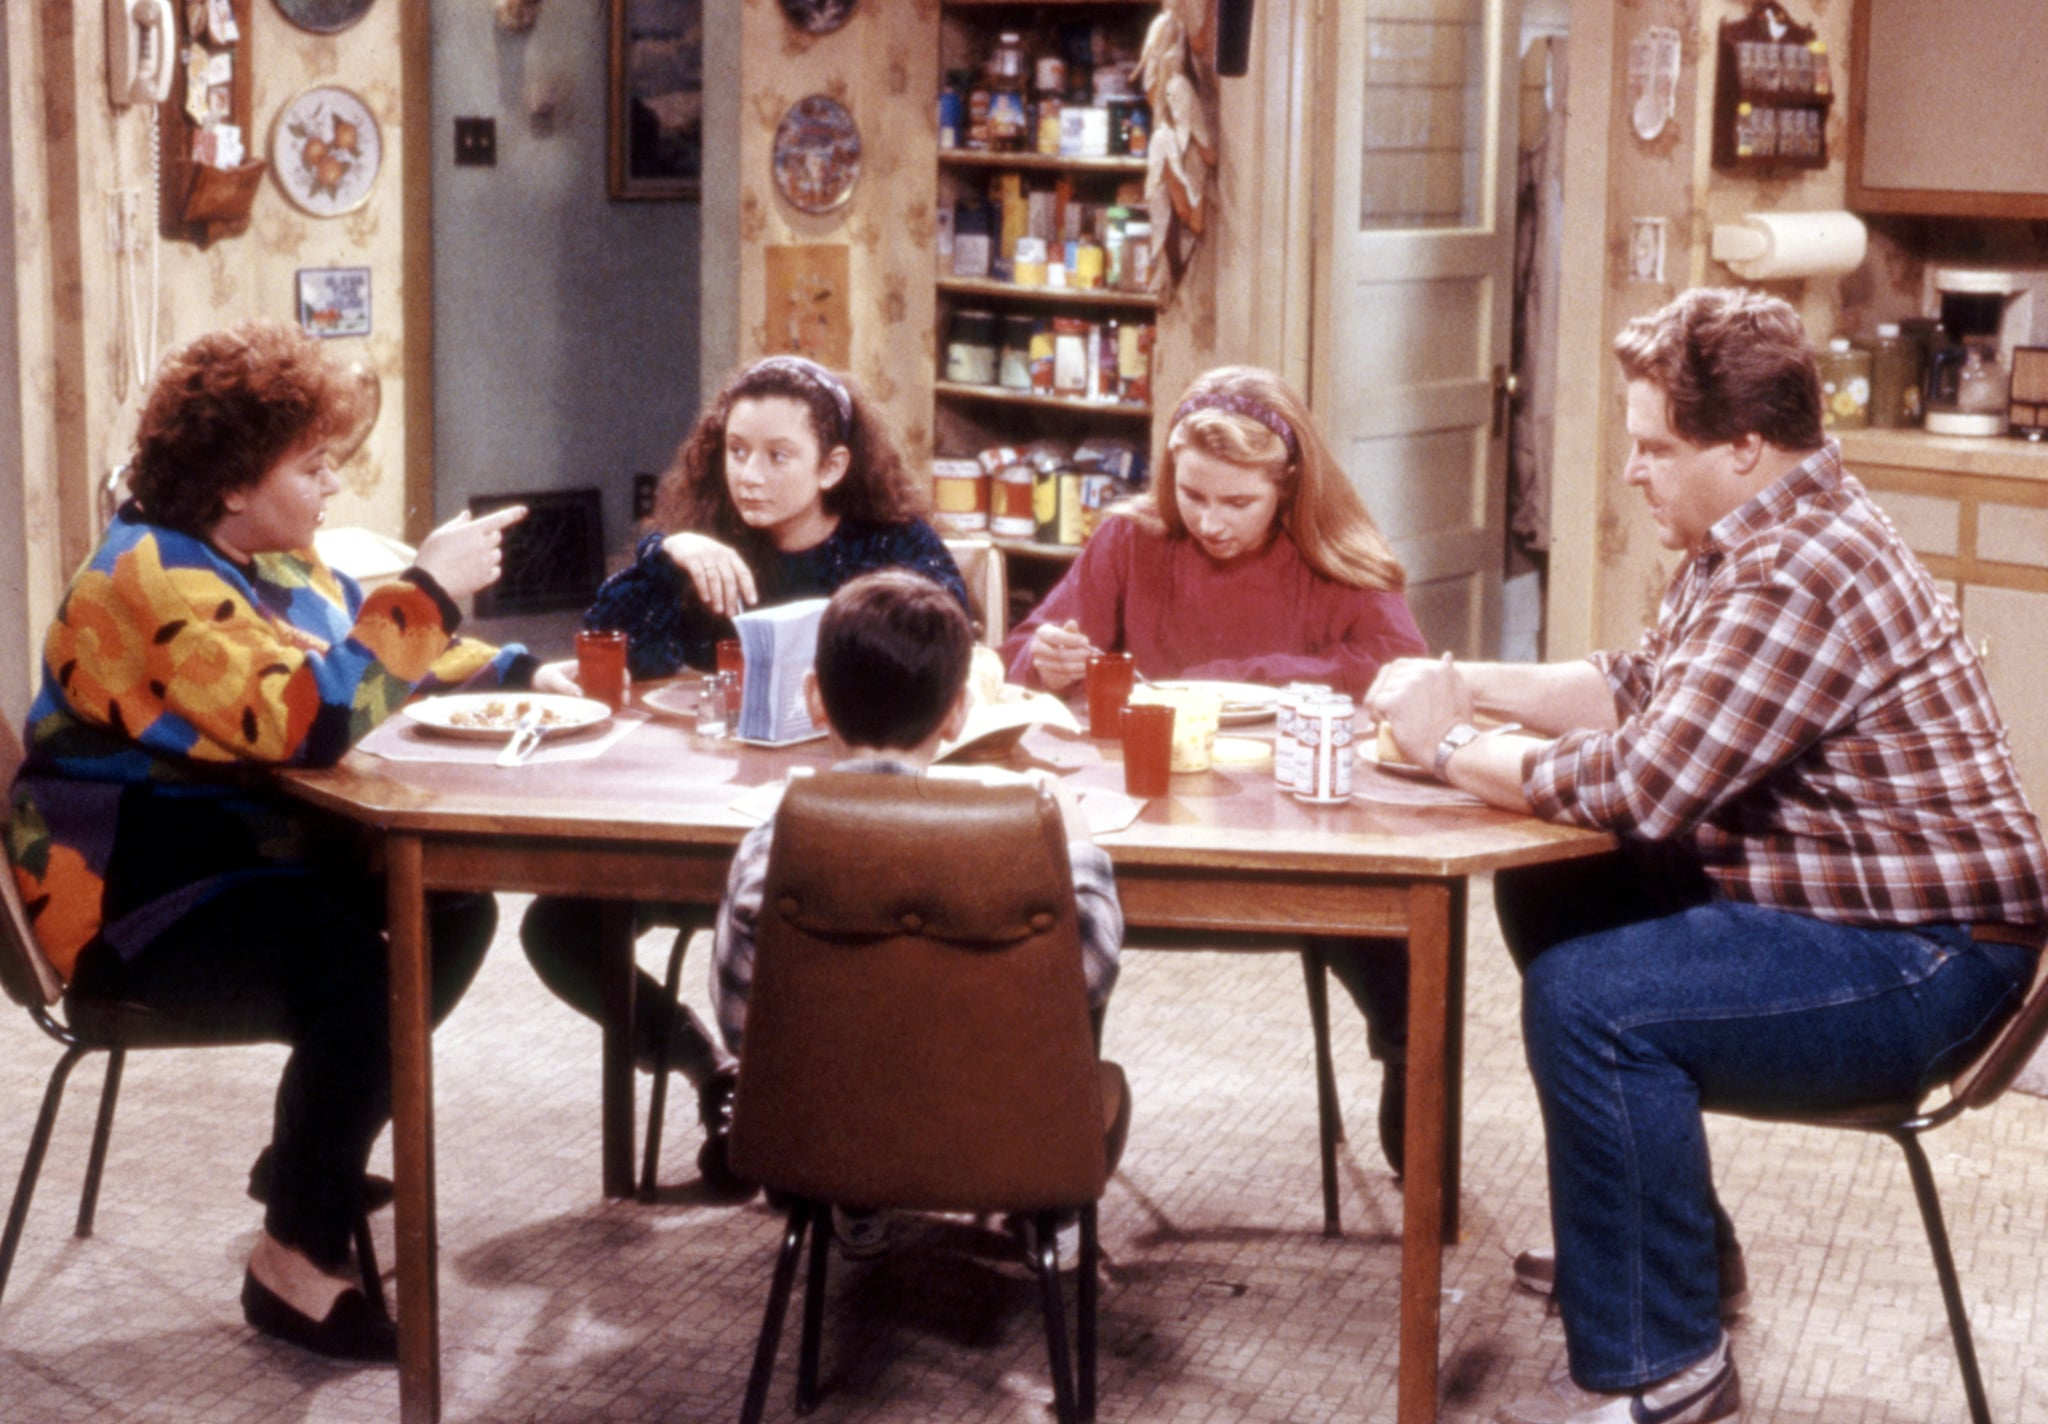 ROSEANNE, Roseanne, Sara Gilbert, Michael Fishman, Alicia Goranson, John Goodman, Season 3, 1988-1997.  Carsey-Werner / Courtesy: Everett Collection.